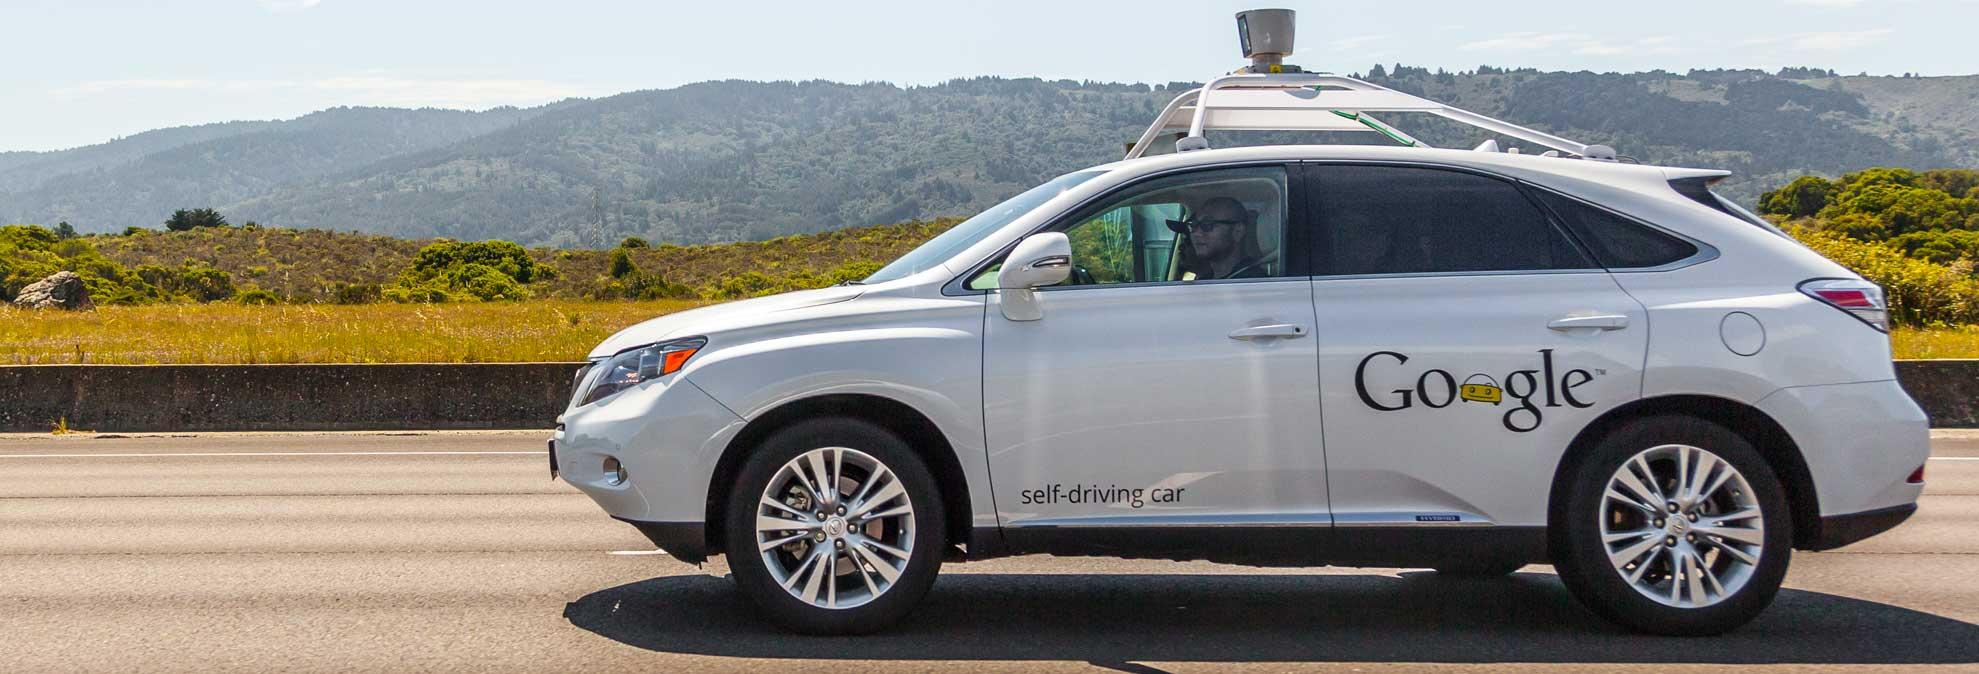 Should Developers of Driverless Cars Share Test Data?